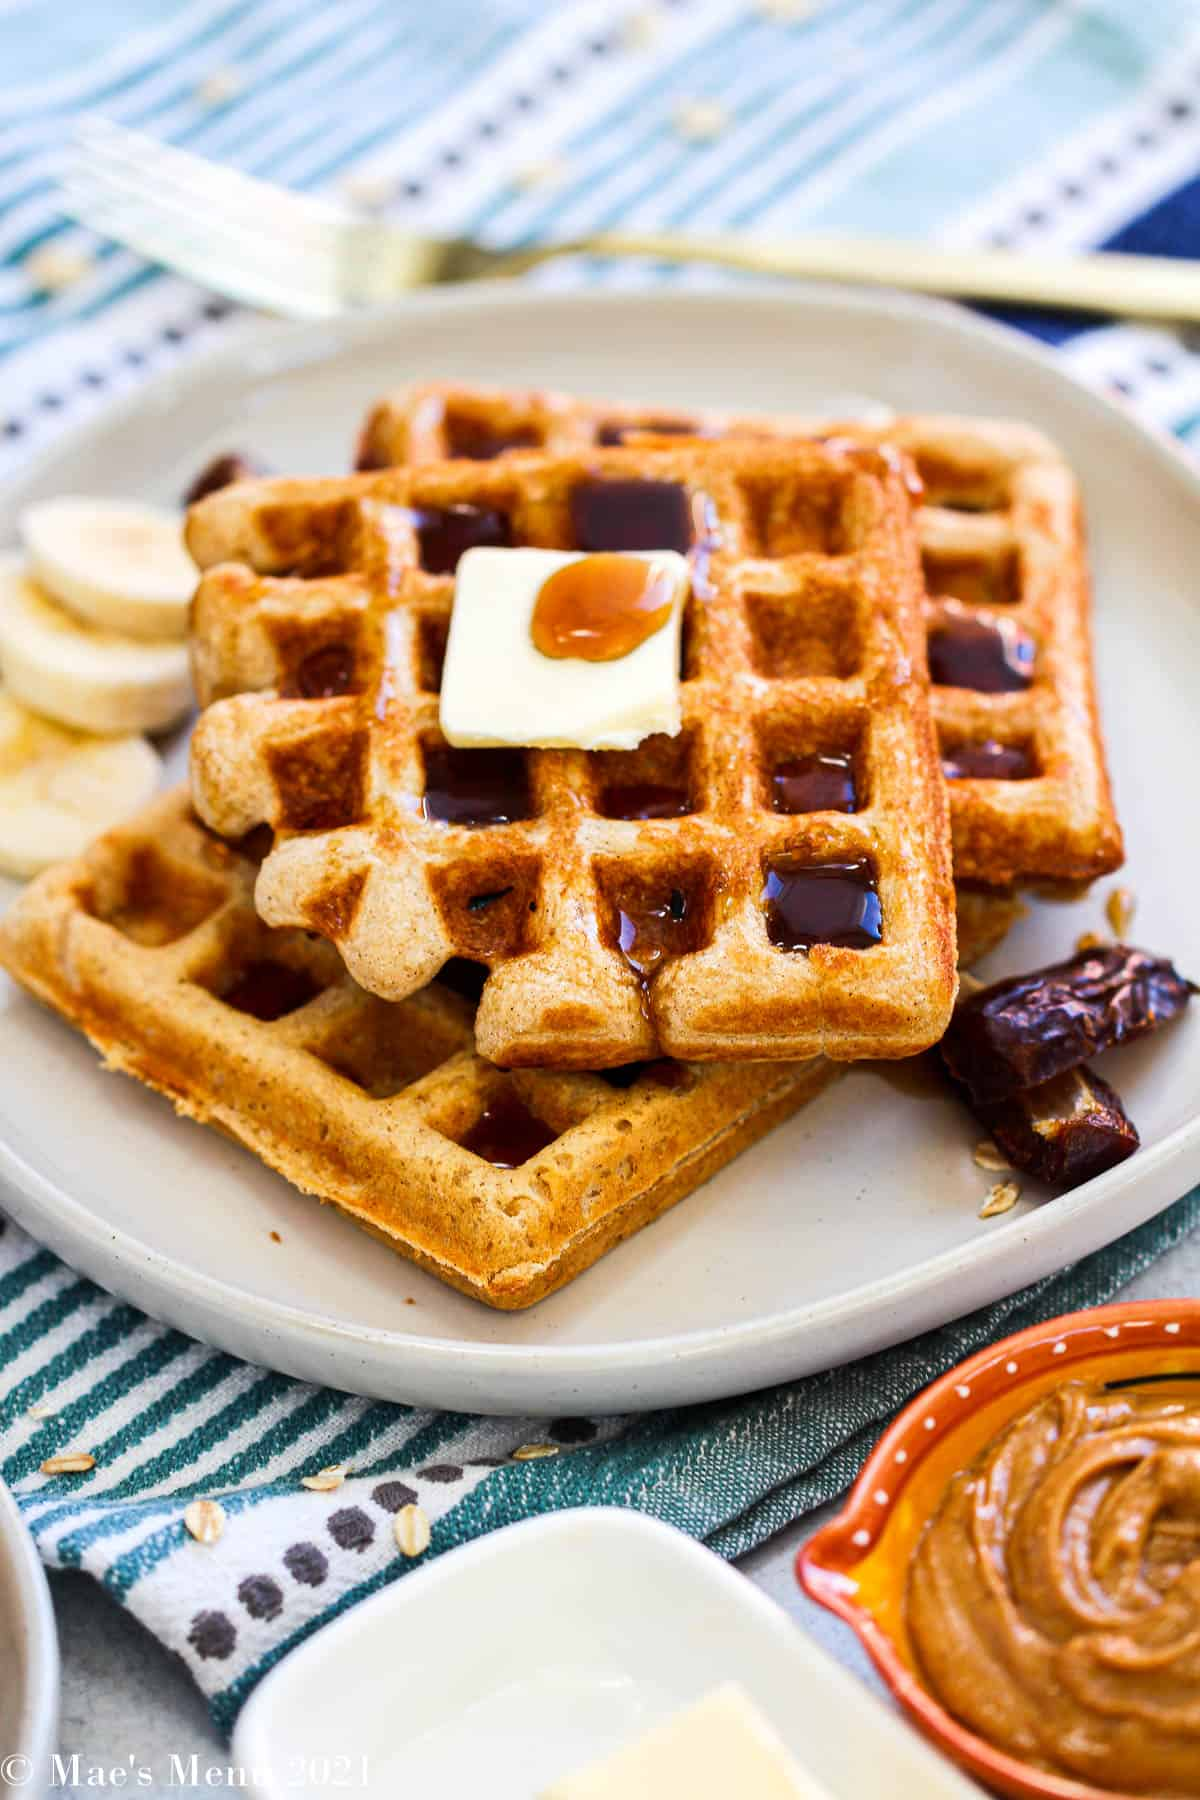 A side shot of whole wheat waffles on a white plate